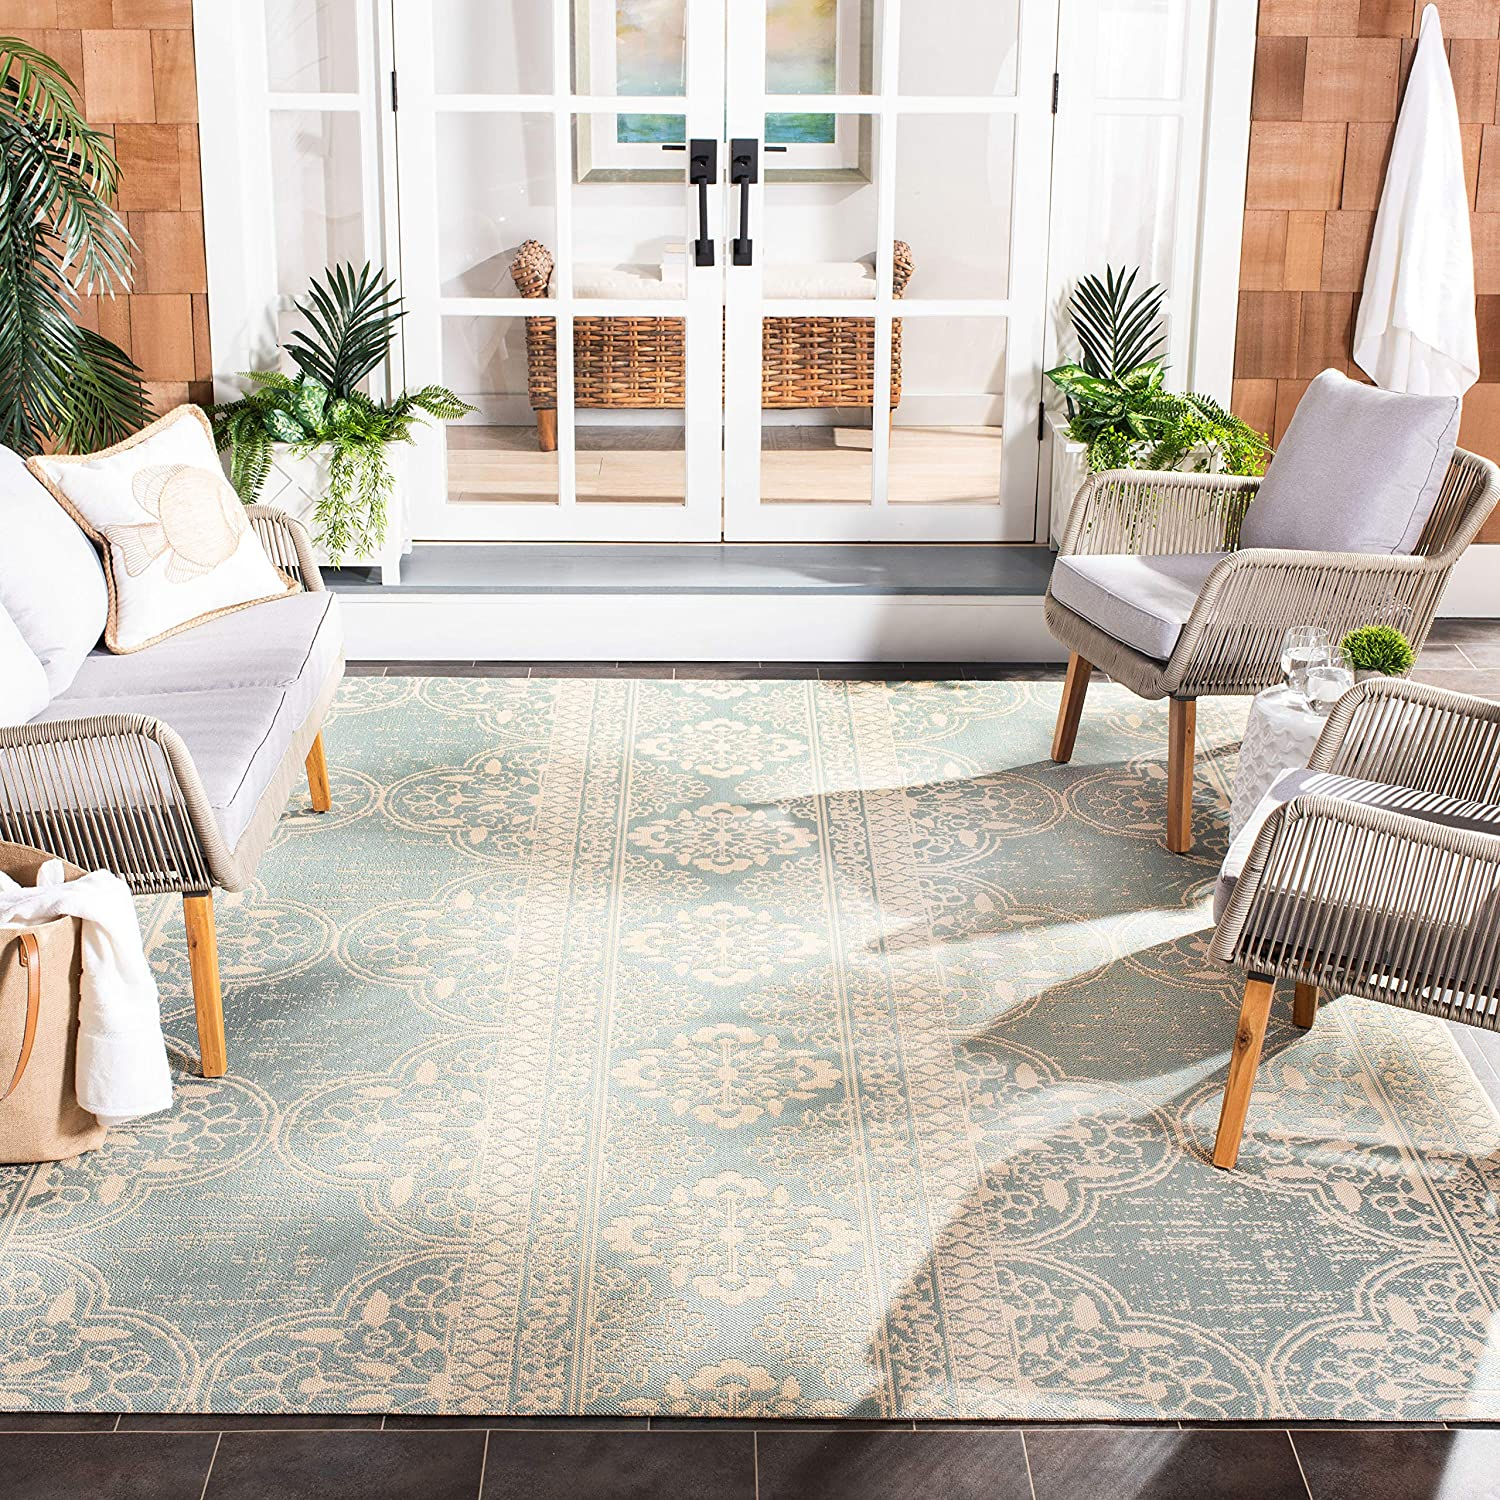 Safavieh Beach House Collection Bhs174l Indoor Outdoor Non Shedding Easy Cleaning Patio Backyard Porch Deck Mudroom Accent Area Rug 4 X 6 Cream Aqua Furniture Decor